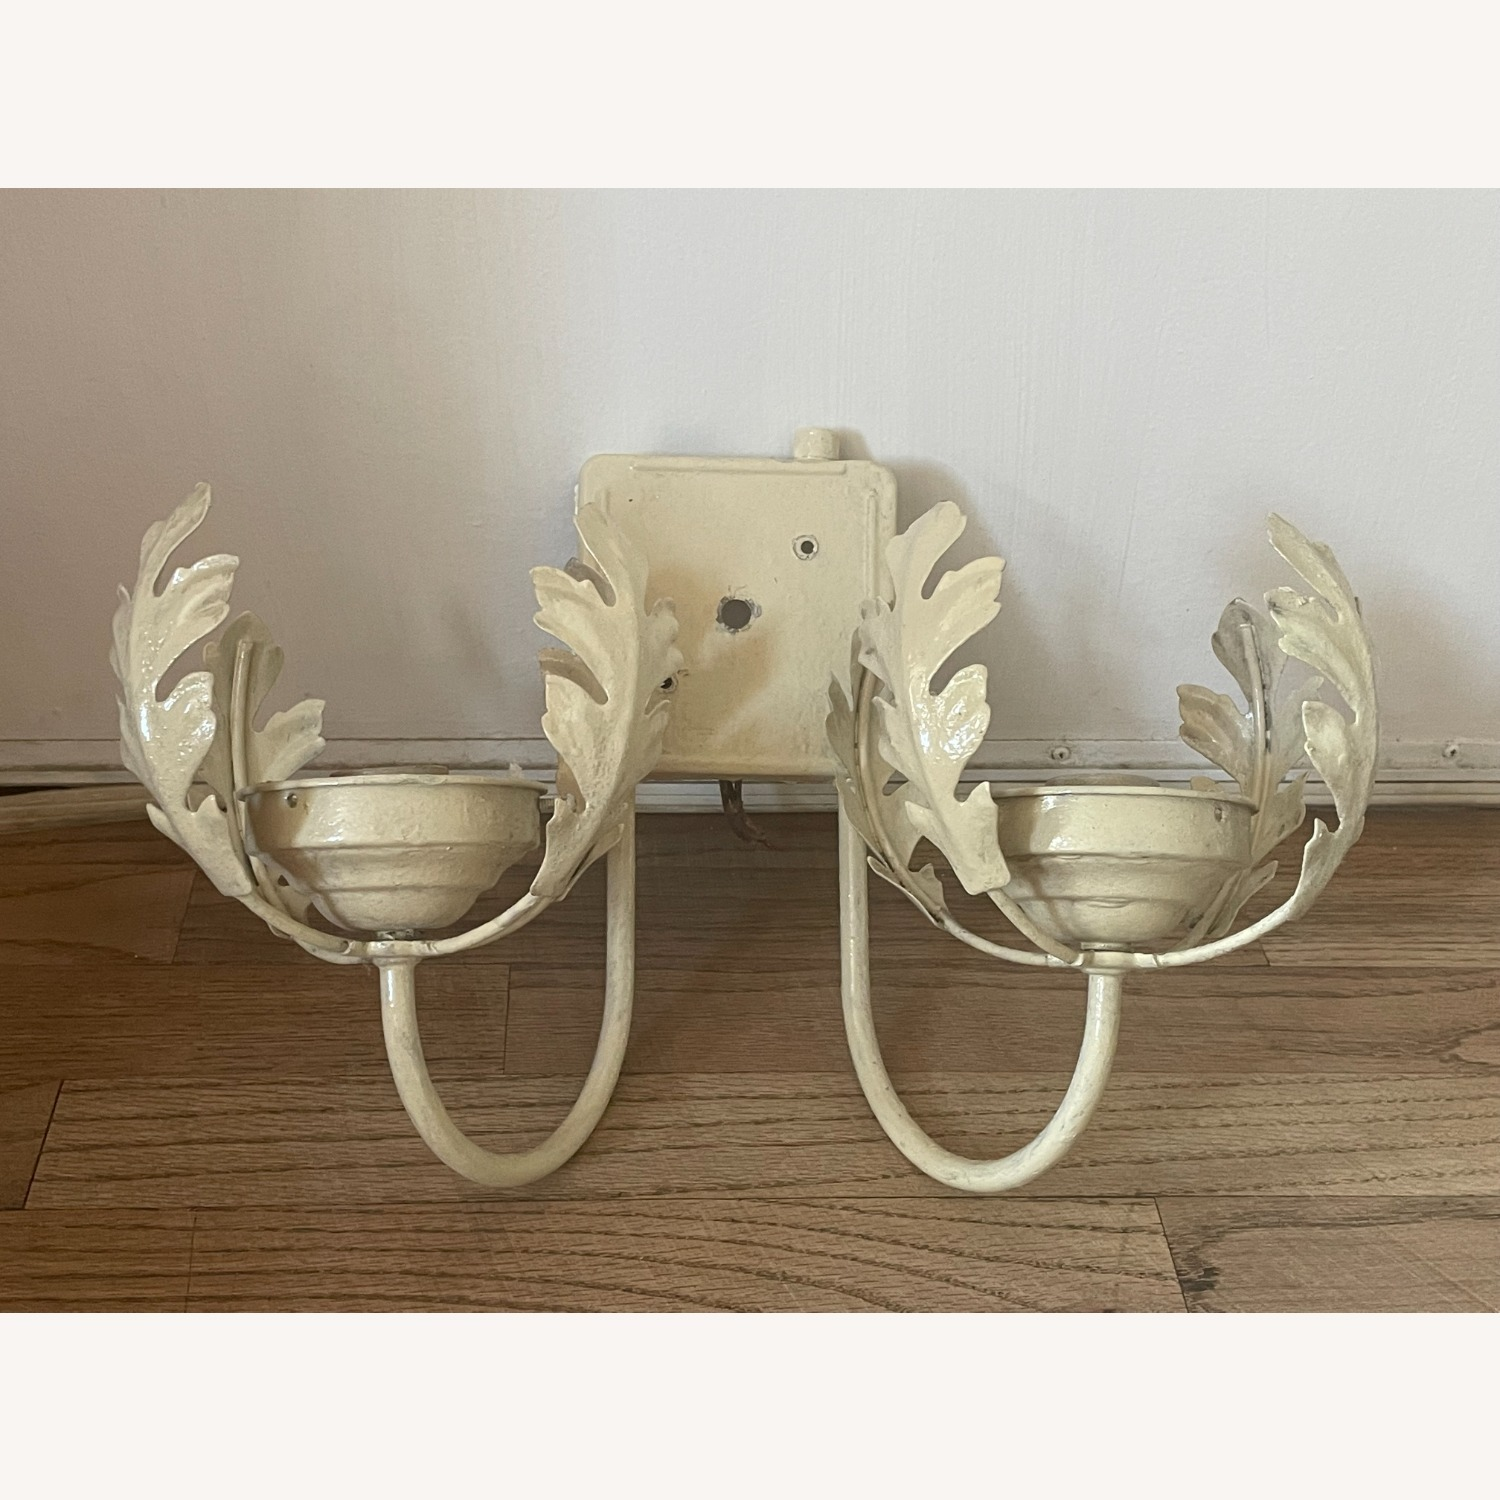 Vintage Mid-Century Rustic Shabby Chic Wall Sconce - image-5